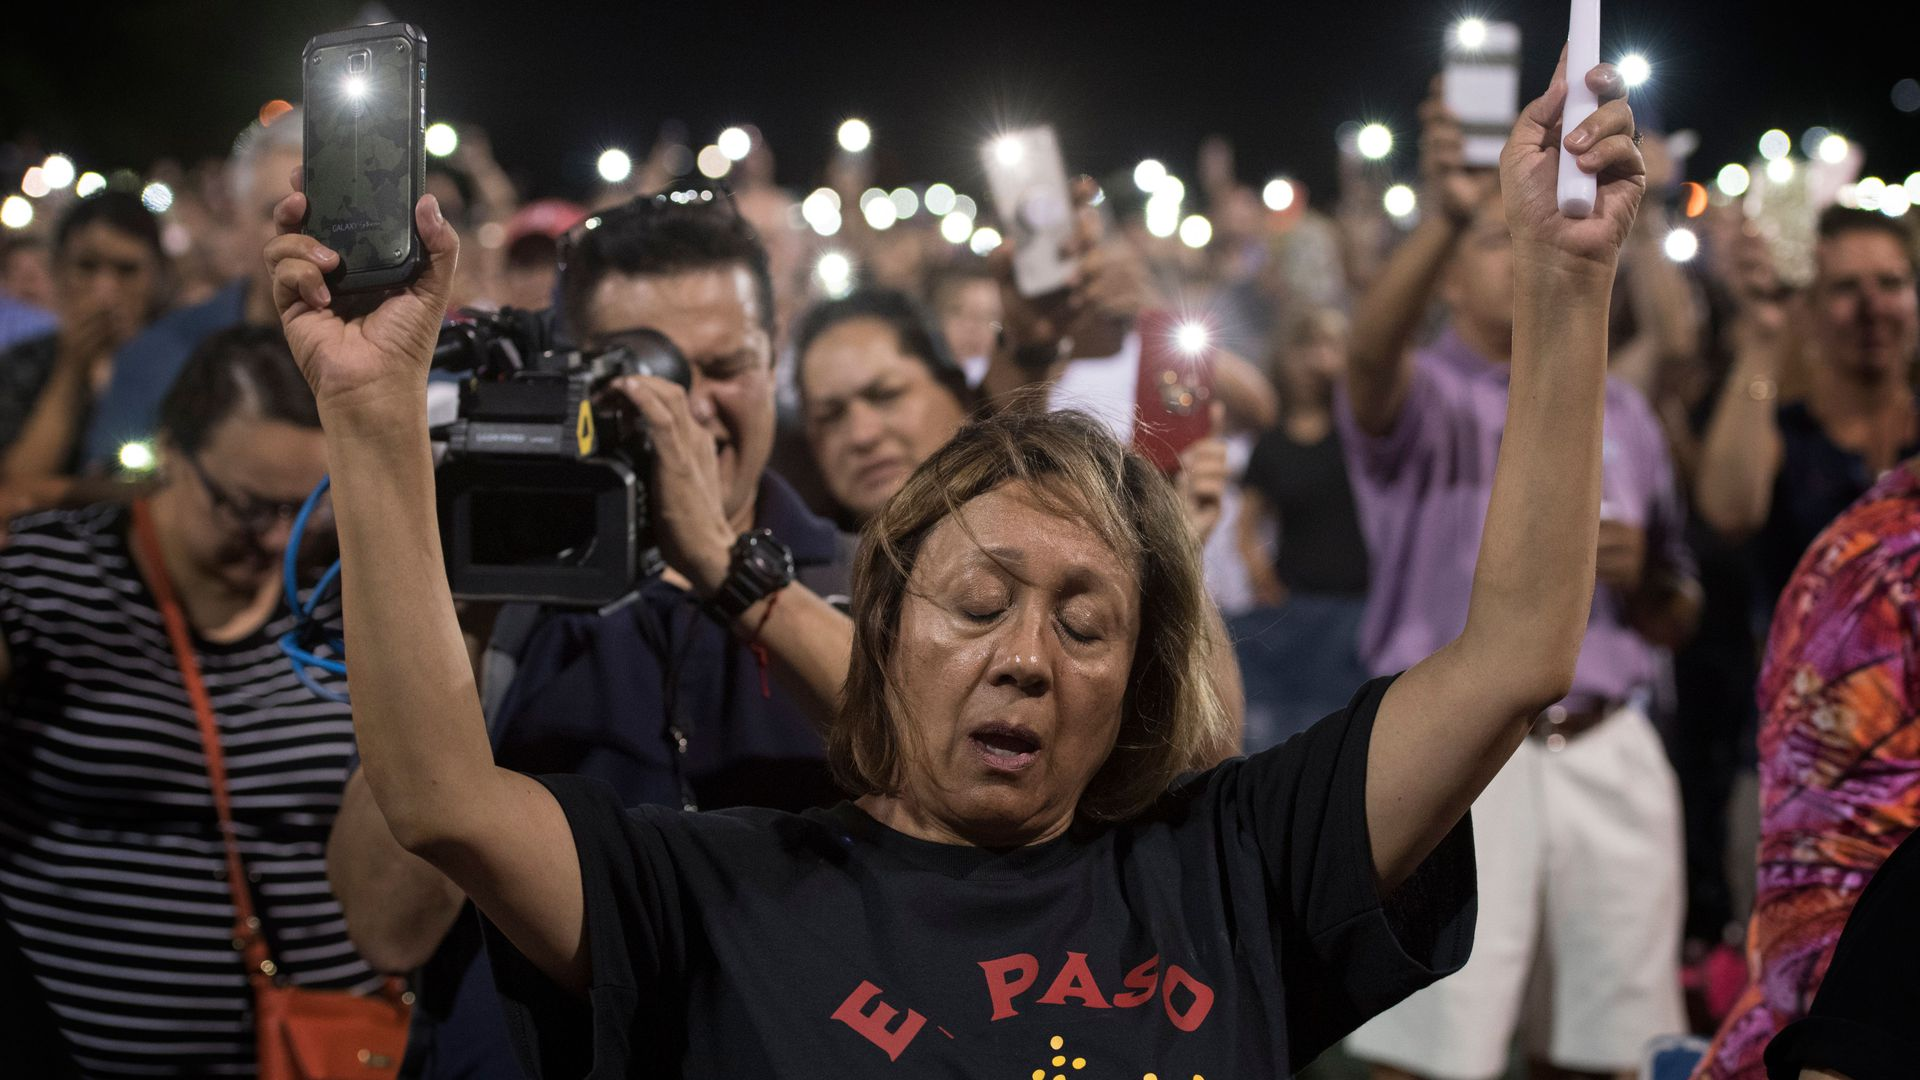 People react during a prayer vigil organized by the city.